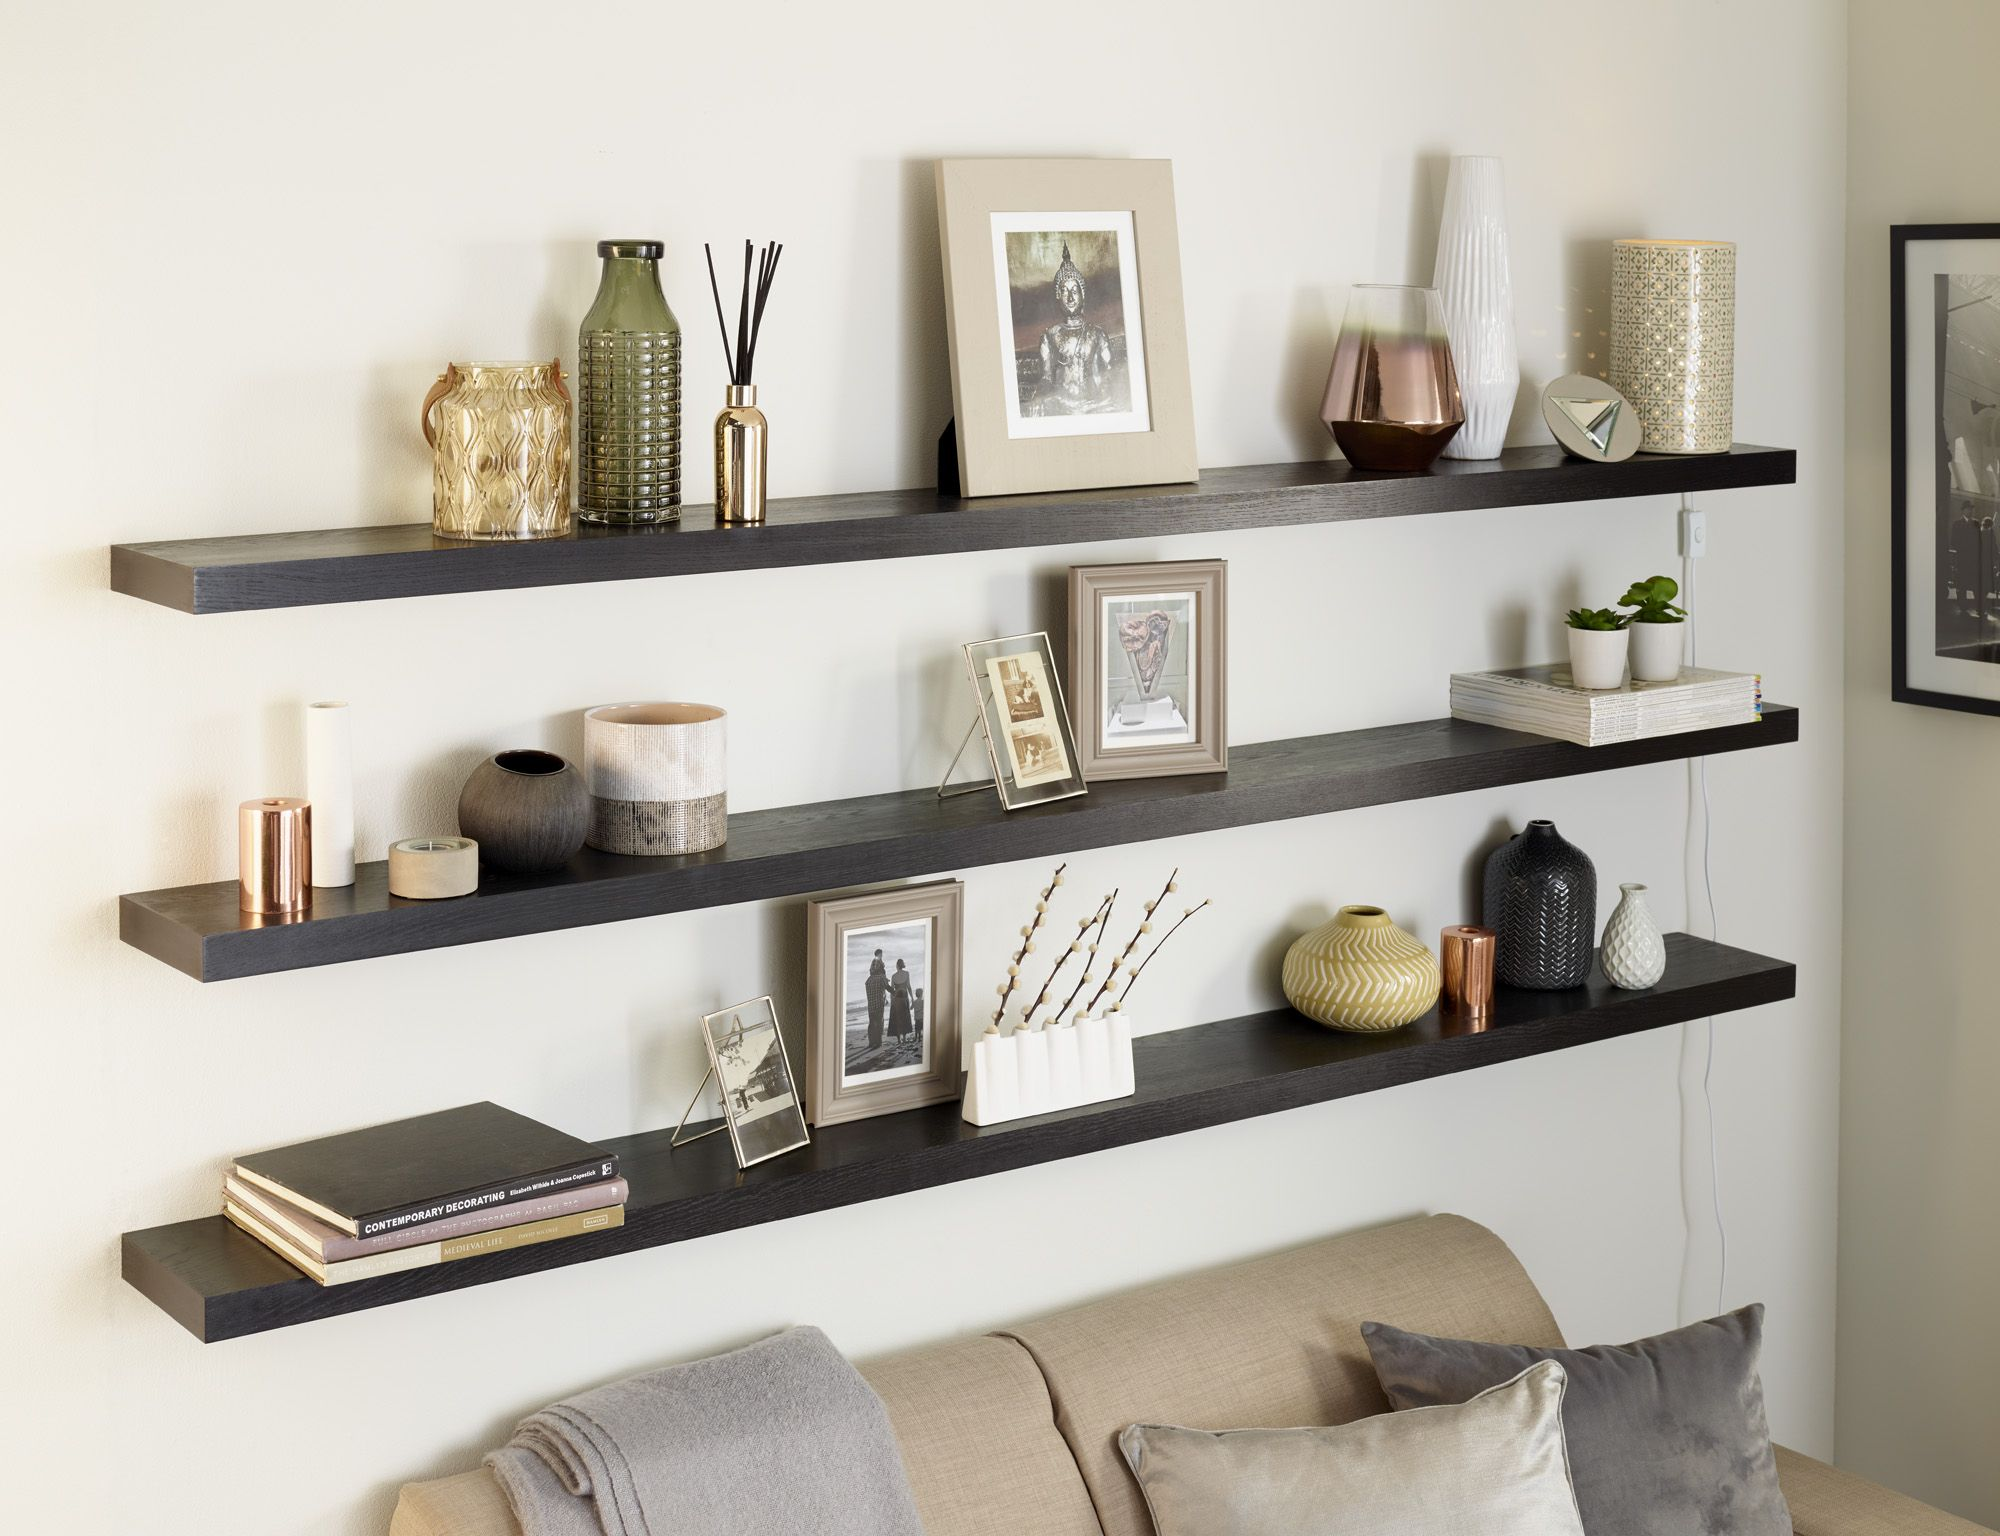 solid oak floating shelf custom made measure customise length depth thickness thick white shelves ikea shoe hanger and wood media console big garage storage solutions hanging